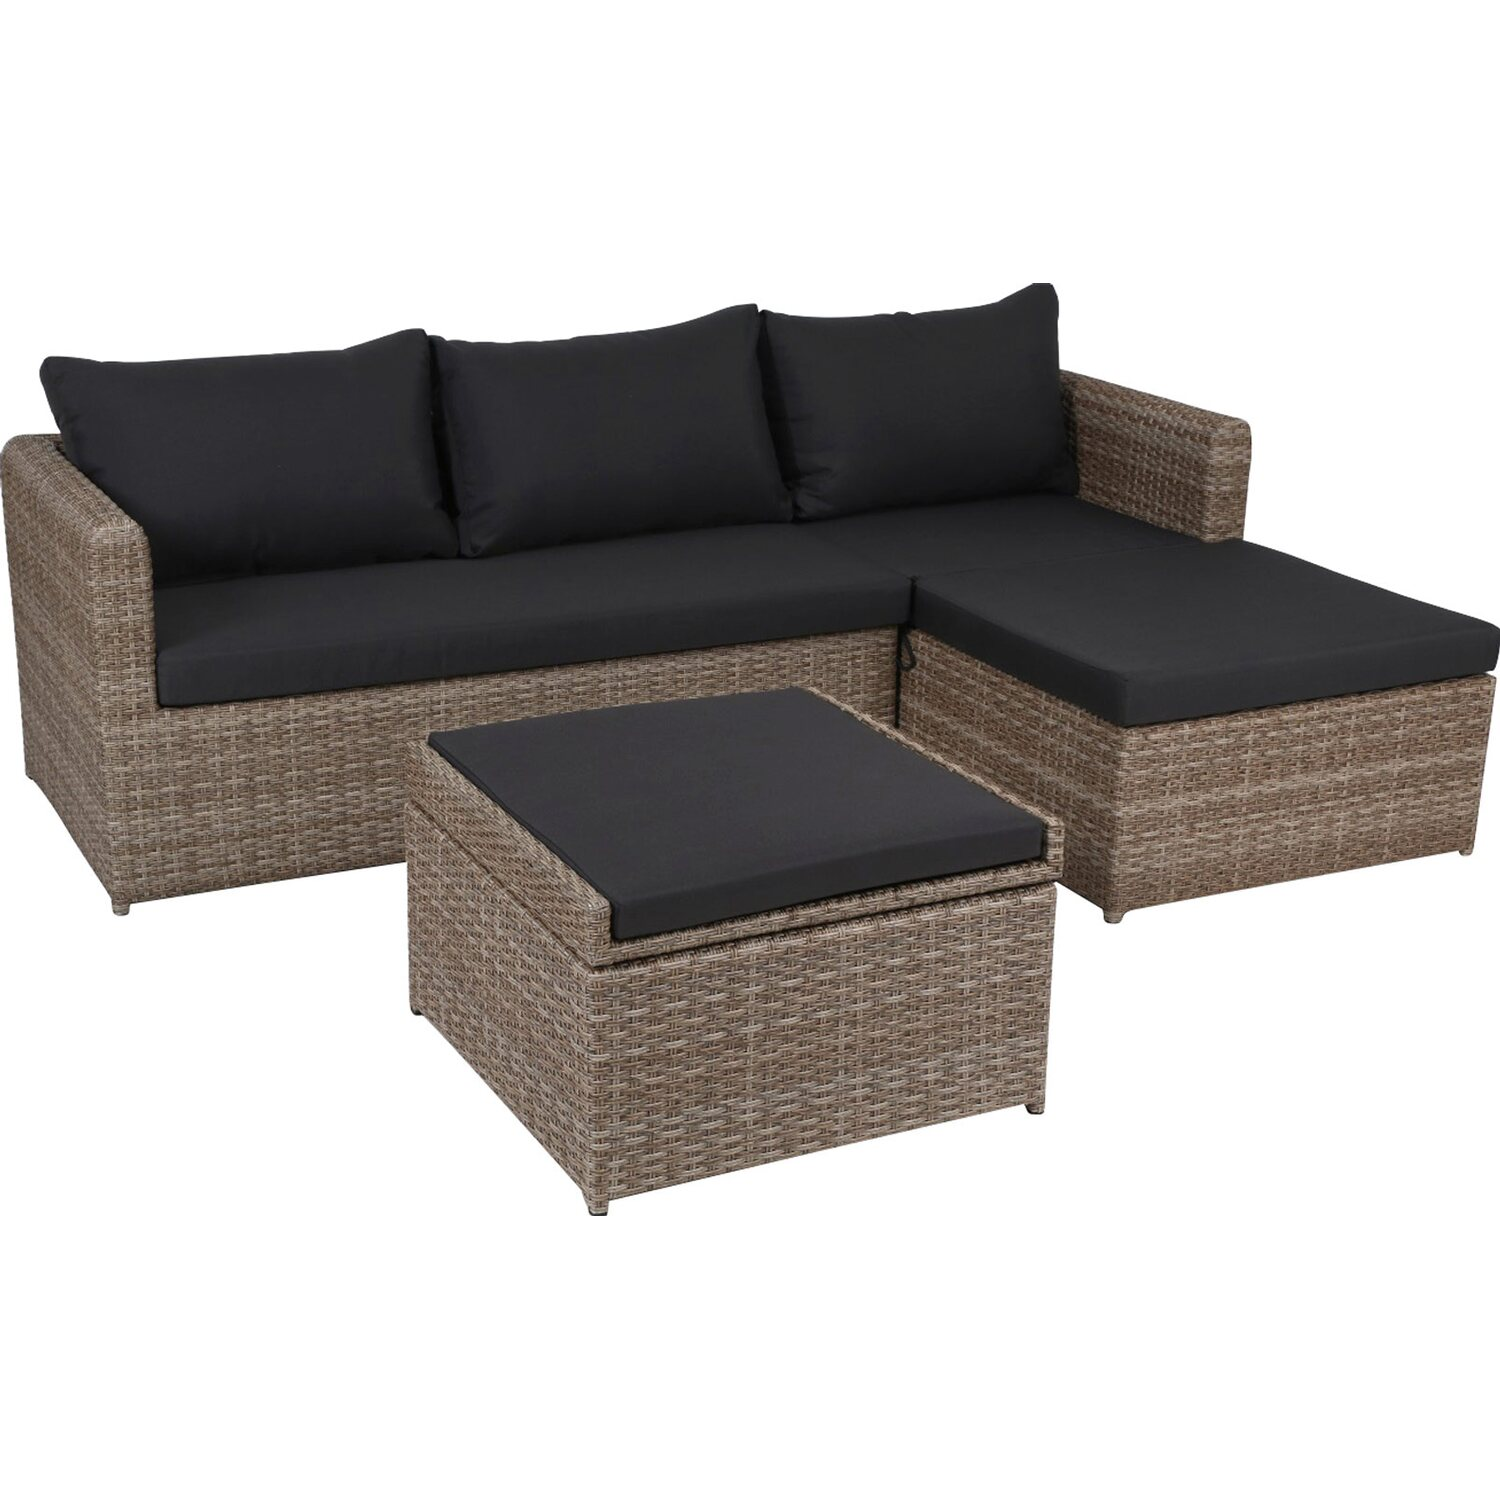 greemotion garten lounge set louisville polyrattan braun 3 teilig kaufen bei obi. Black Bedroom Furniture Sets. Home Design Ideas